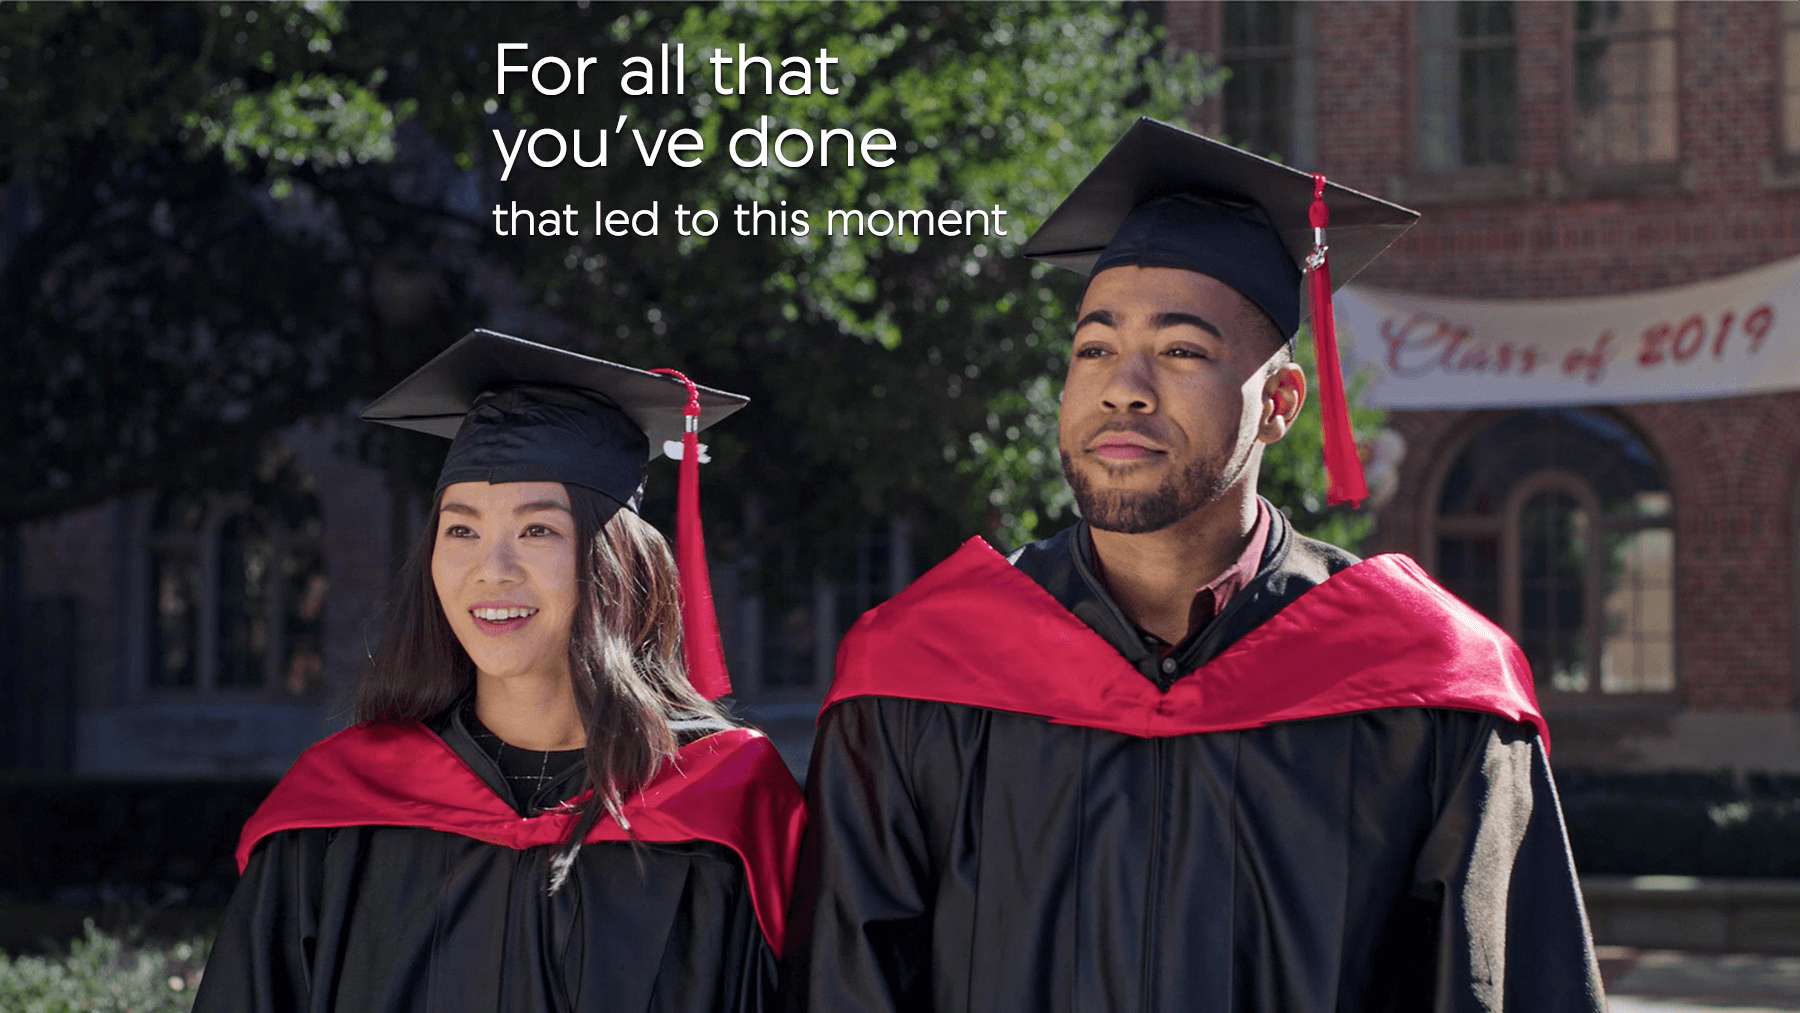 Acura College Graduate Program Graduation Moment Graphic